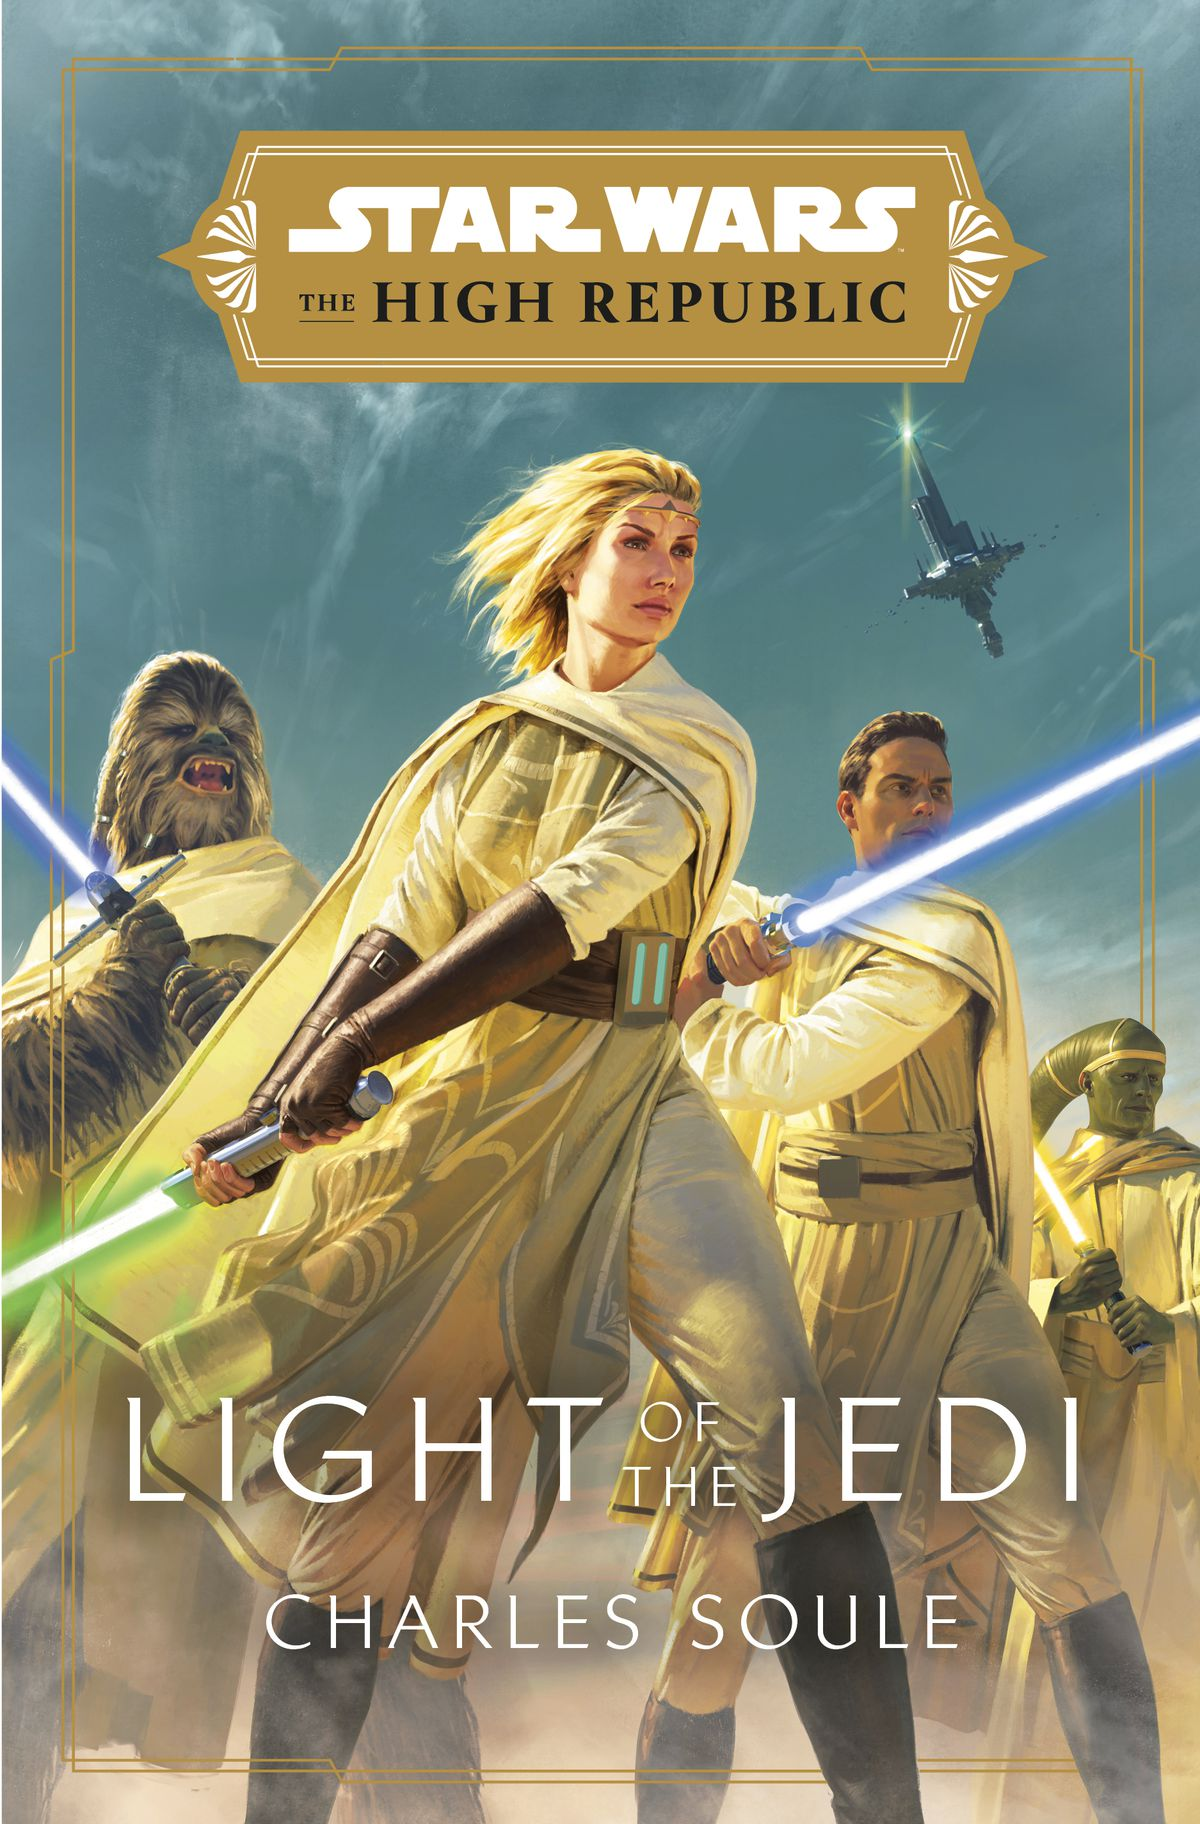 star wars: the high republic: light of the jedi cover by charles soule